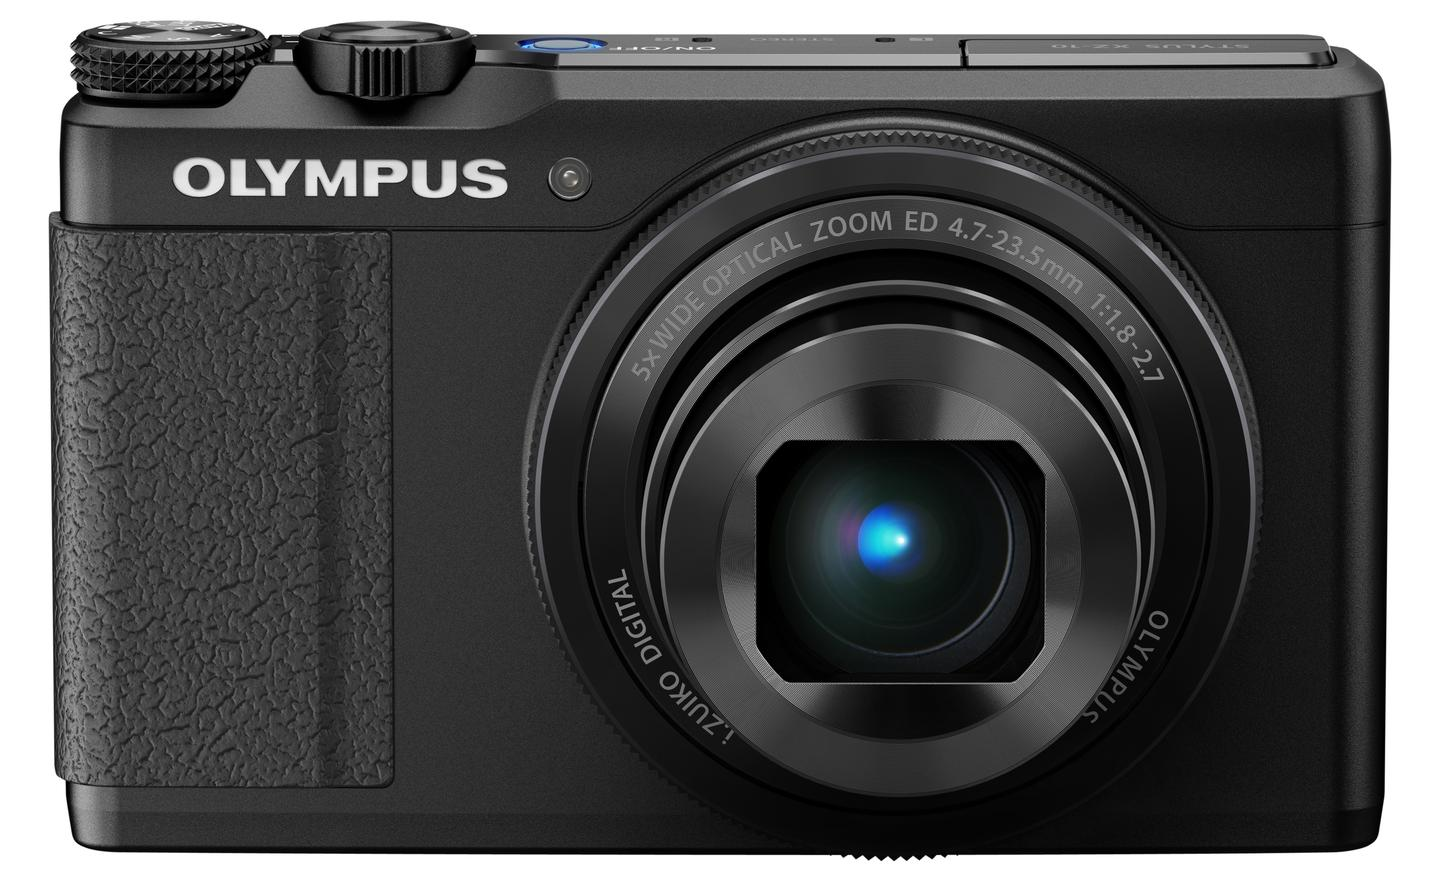 A control ring around the lens of the Olympus XZ-10 can be used to adjust settings such as aperture and shutter speed